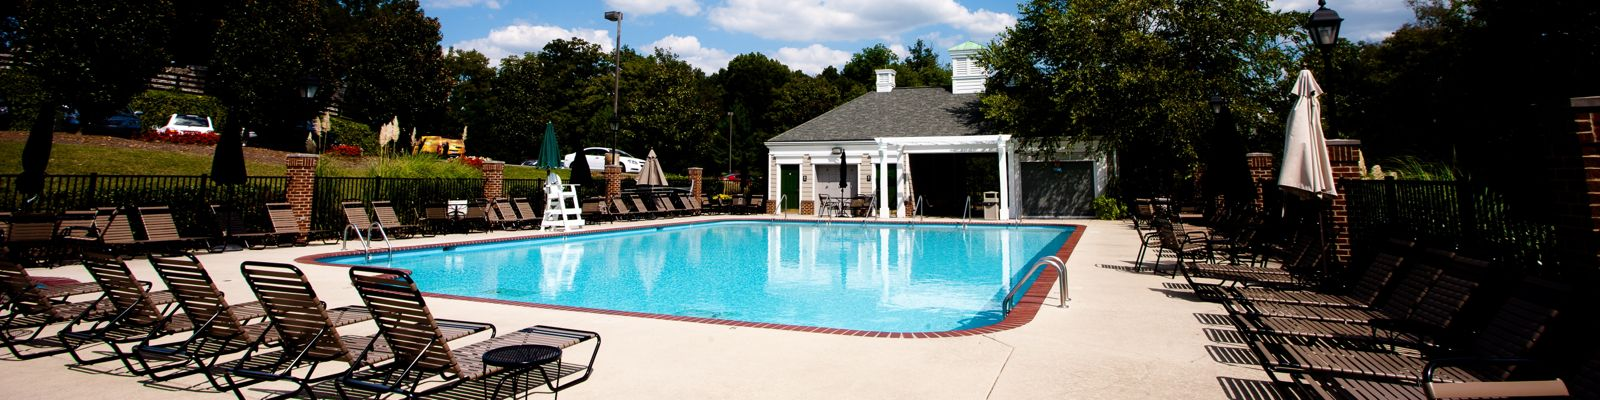 The Governors Club Premier Private Country Club In Nashville Tennessee Pool And Pavilion